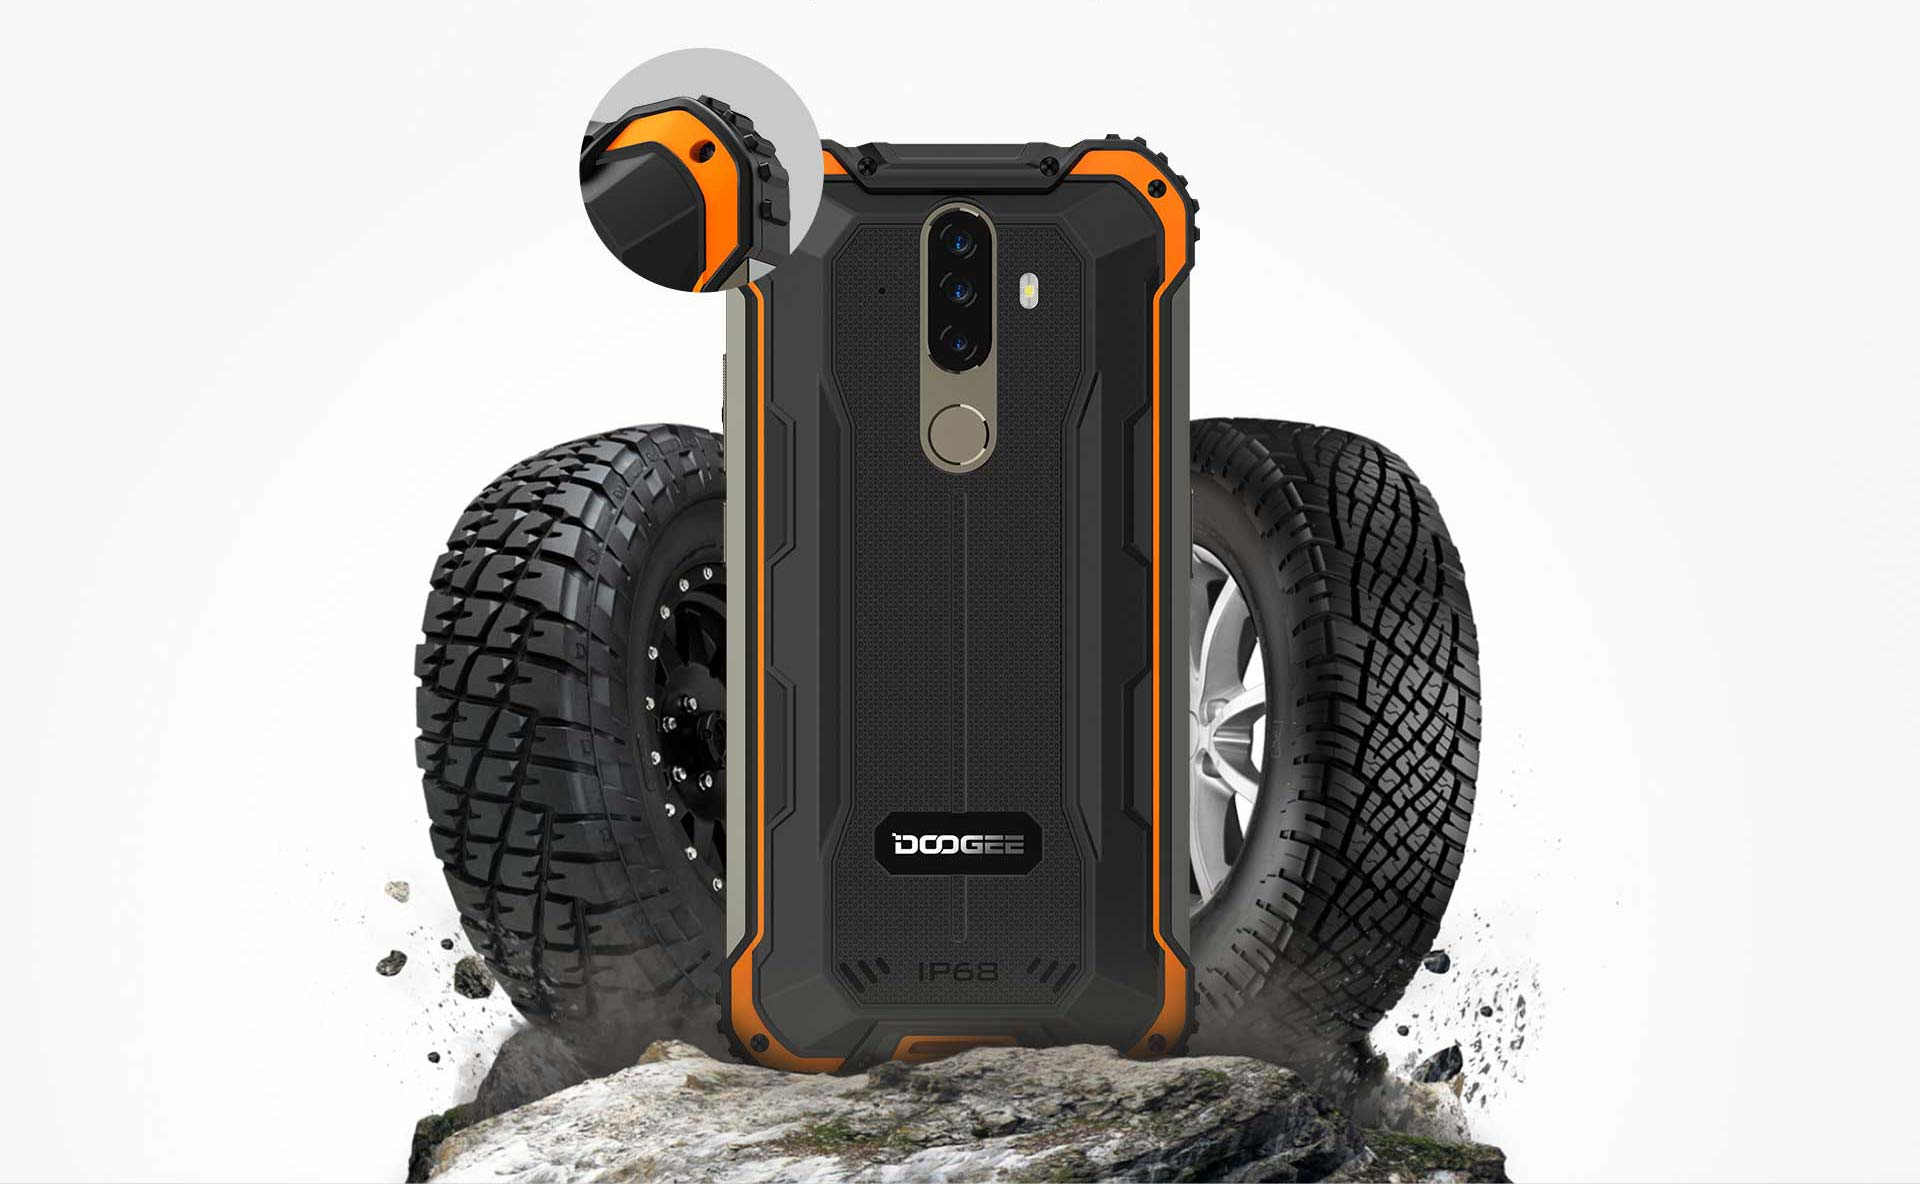 Doogee cell phone